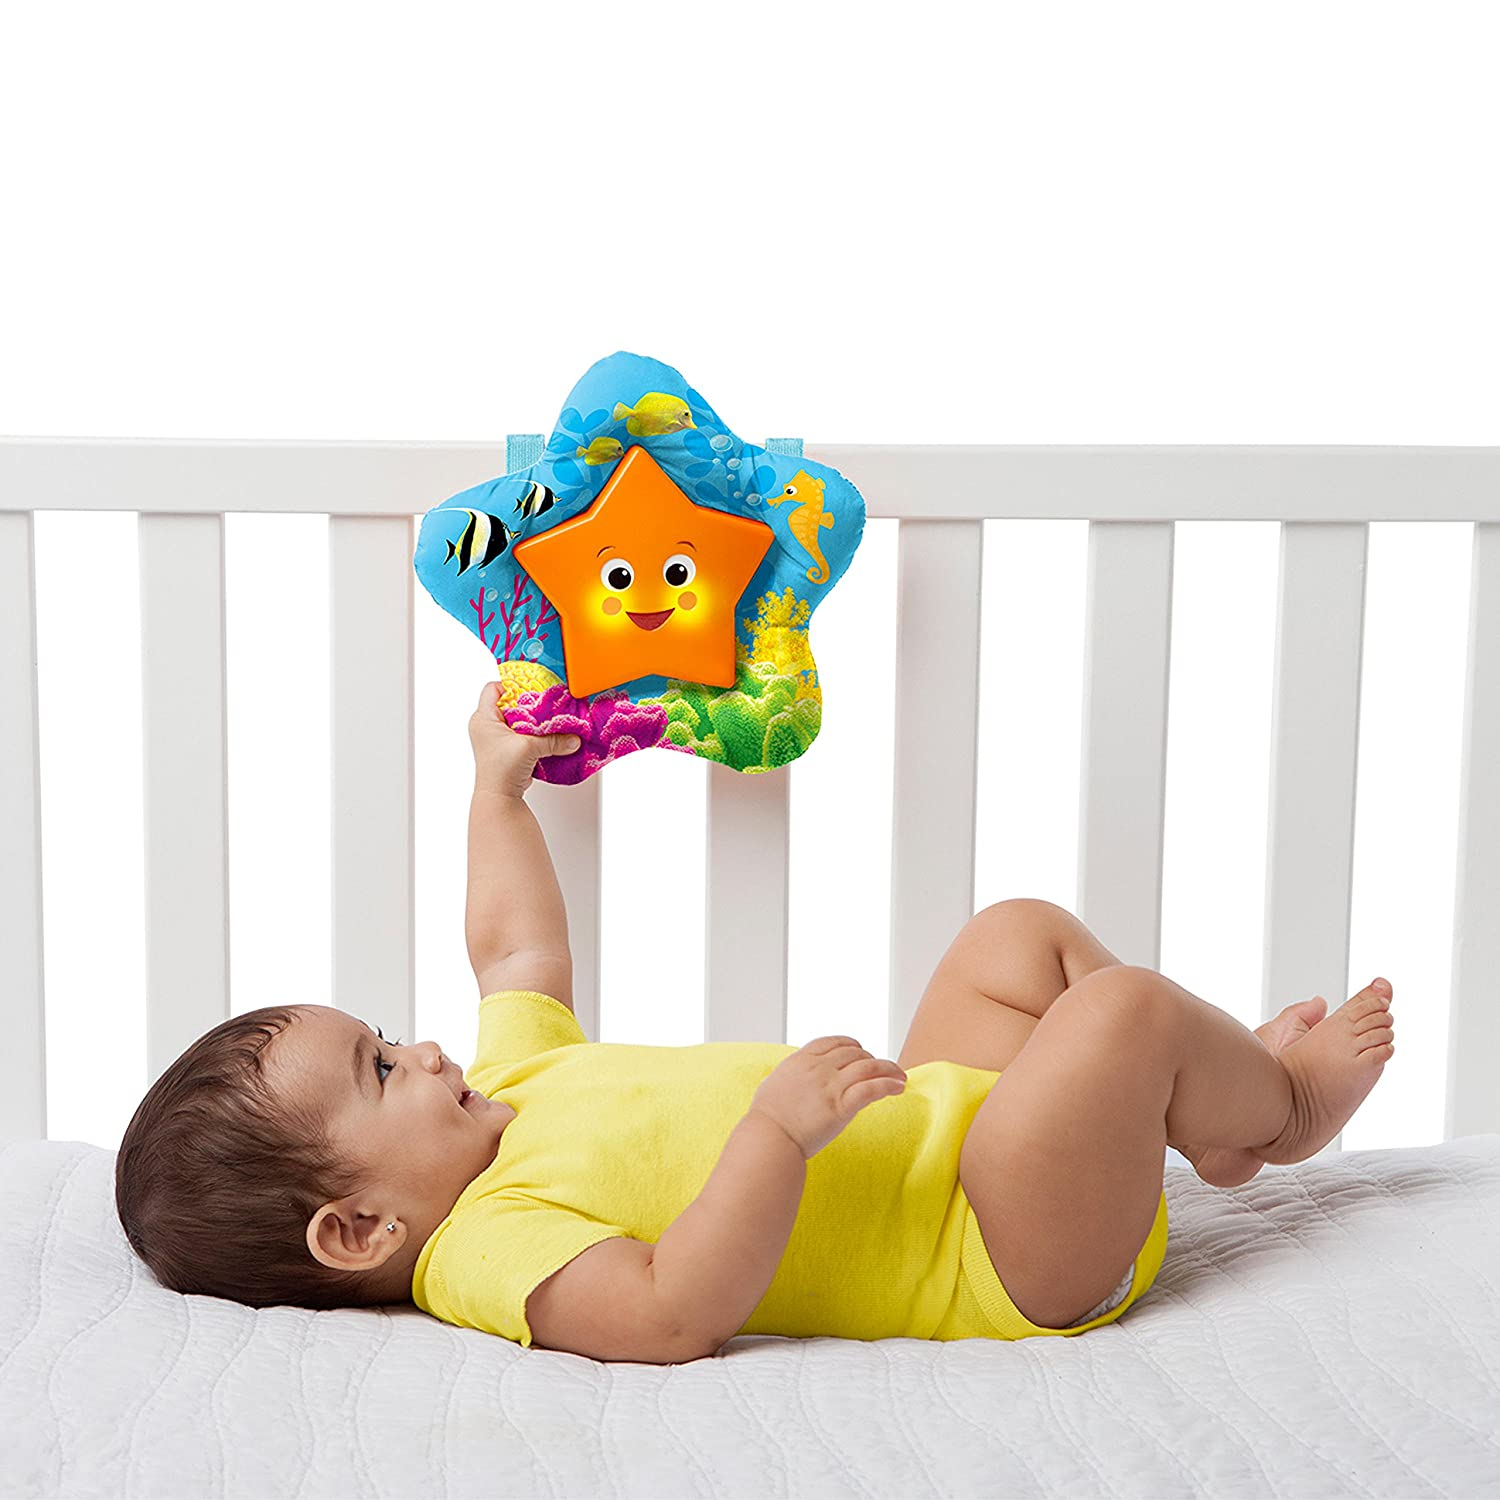 Crib gym for babies - Amazon Com Baby Einstein Play Gym Nautical Friends Learning And Development Toys Baby